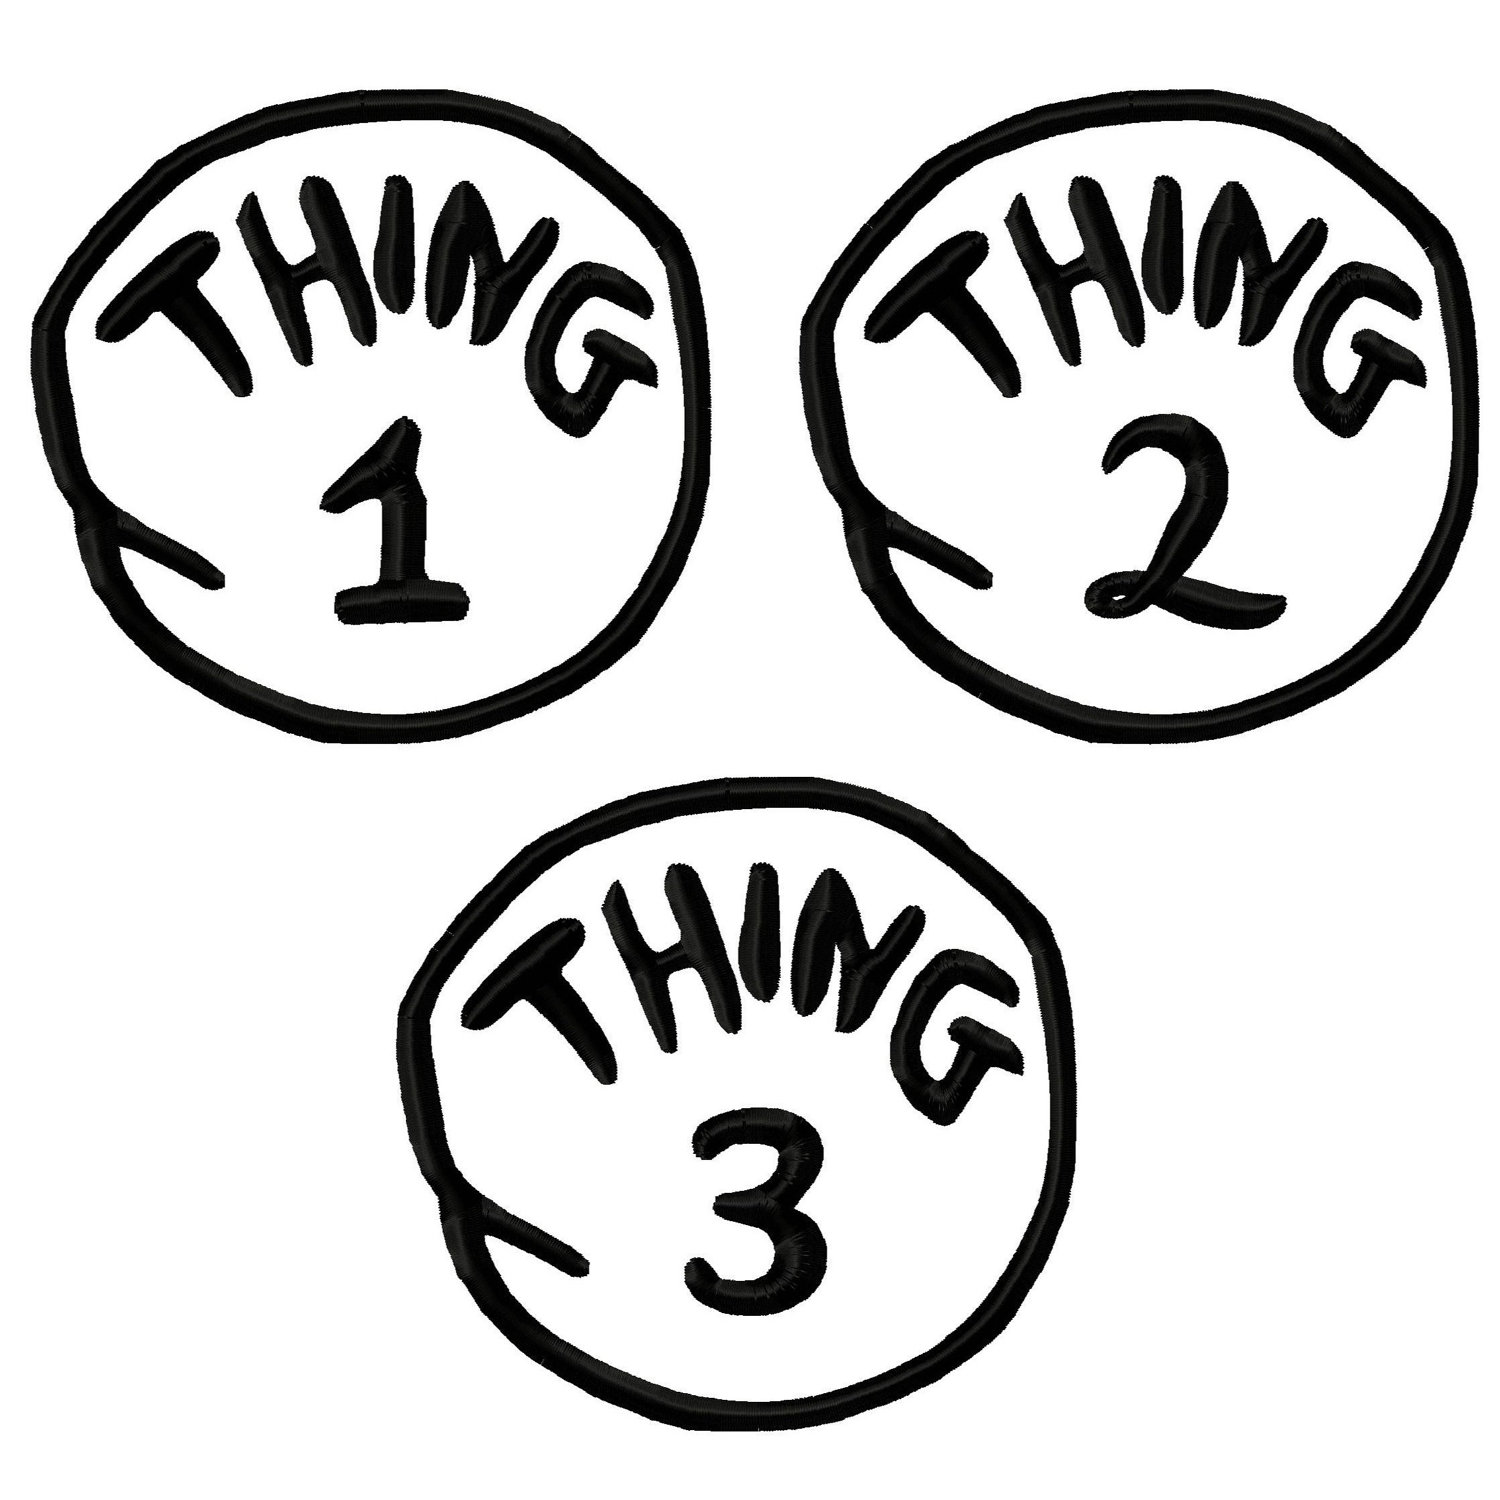 Thing one and thing two clipart black and white vector free download Free Thing 1 Cliparts, Download Free Clip Art, Free Clip Art ... vector free download